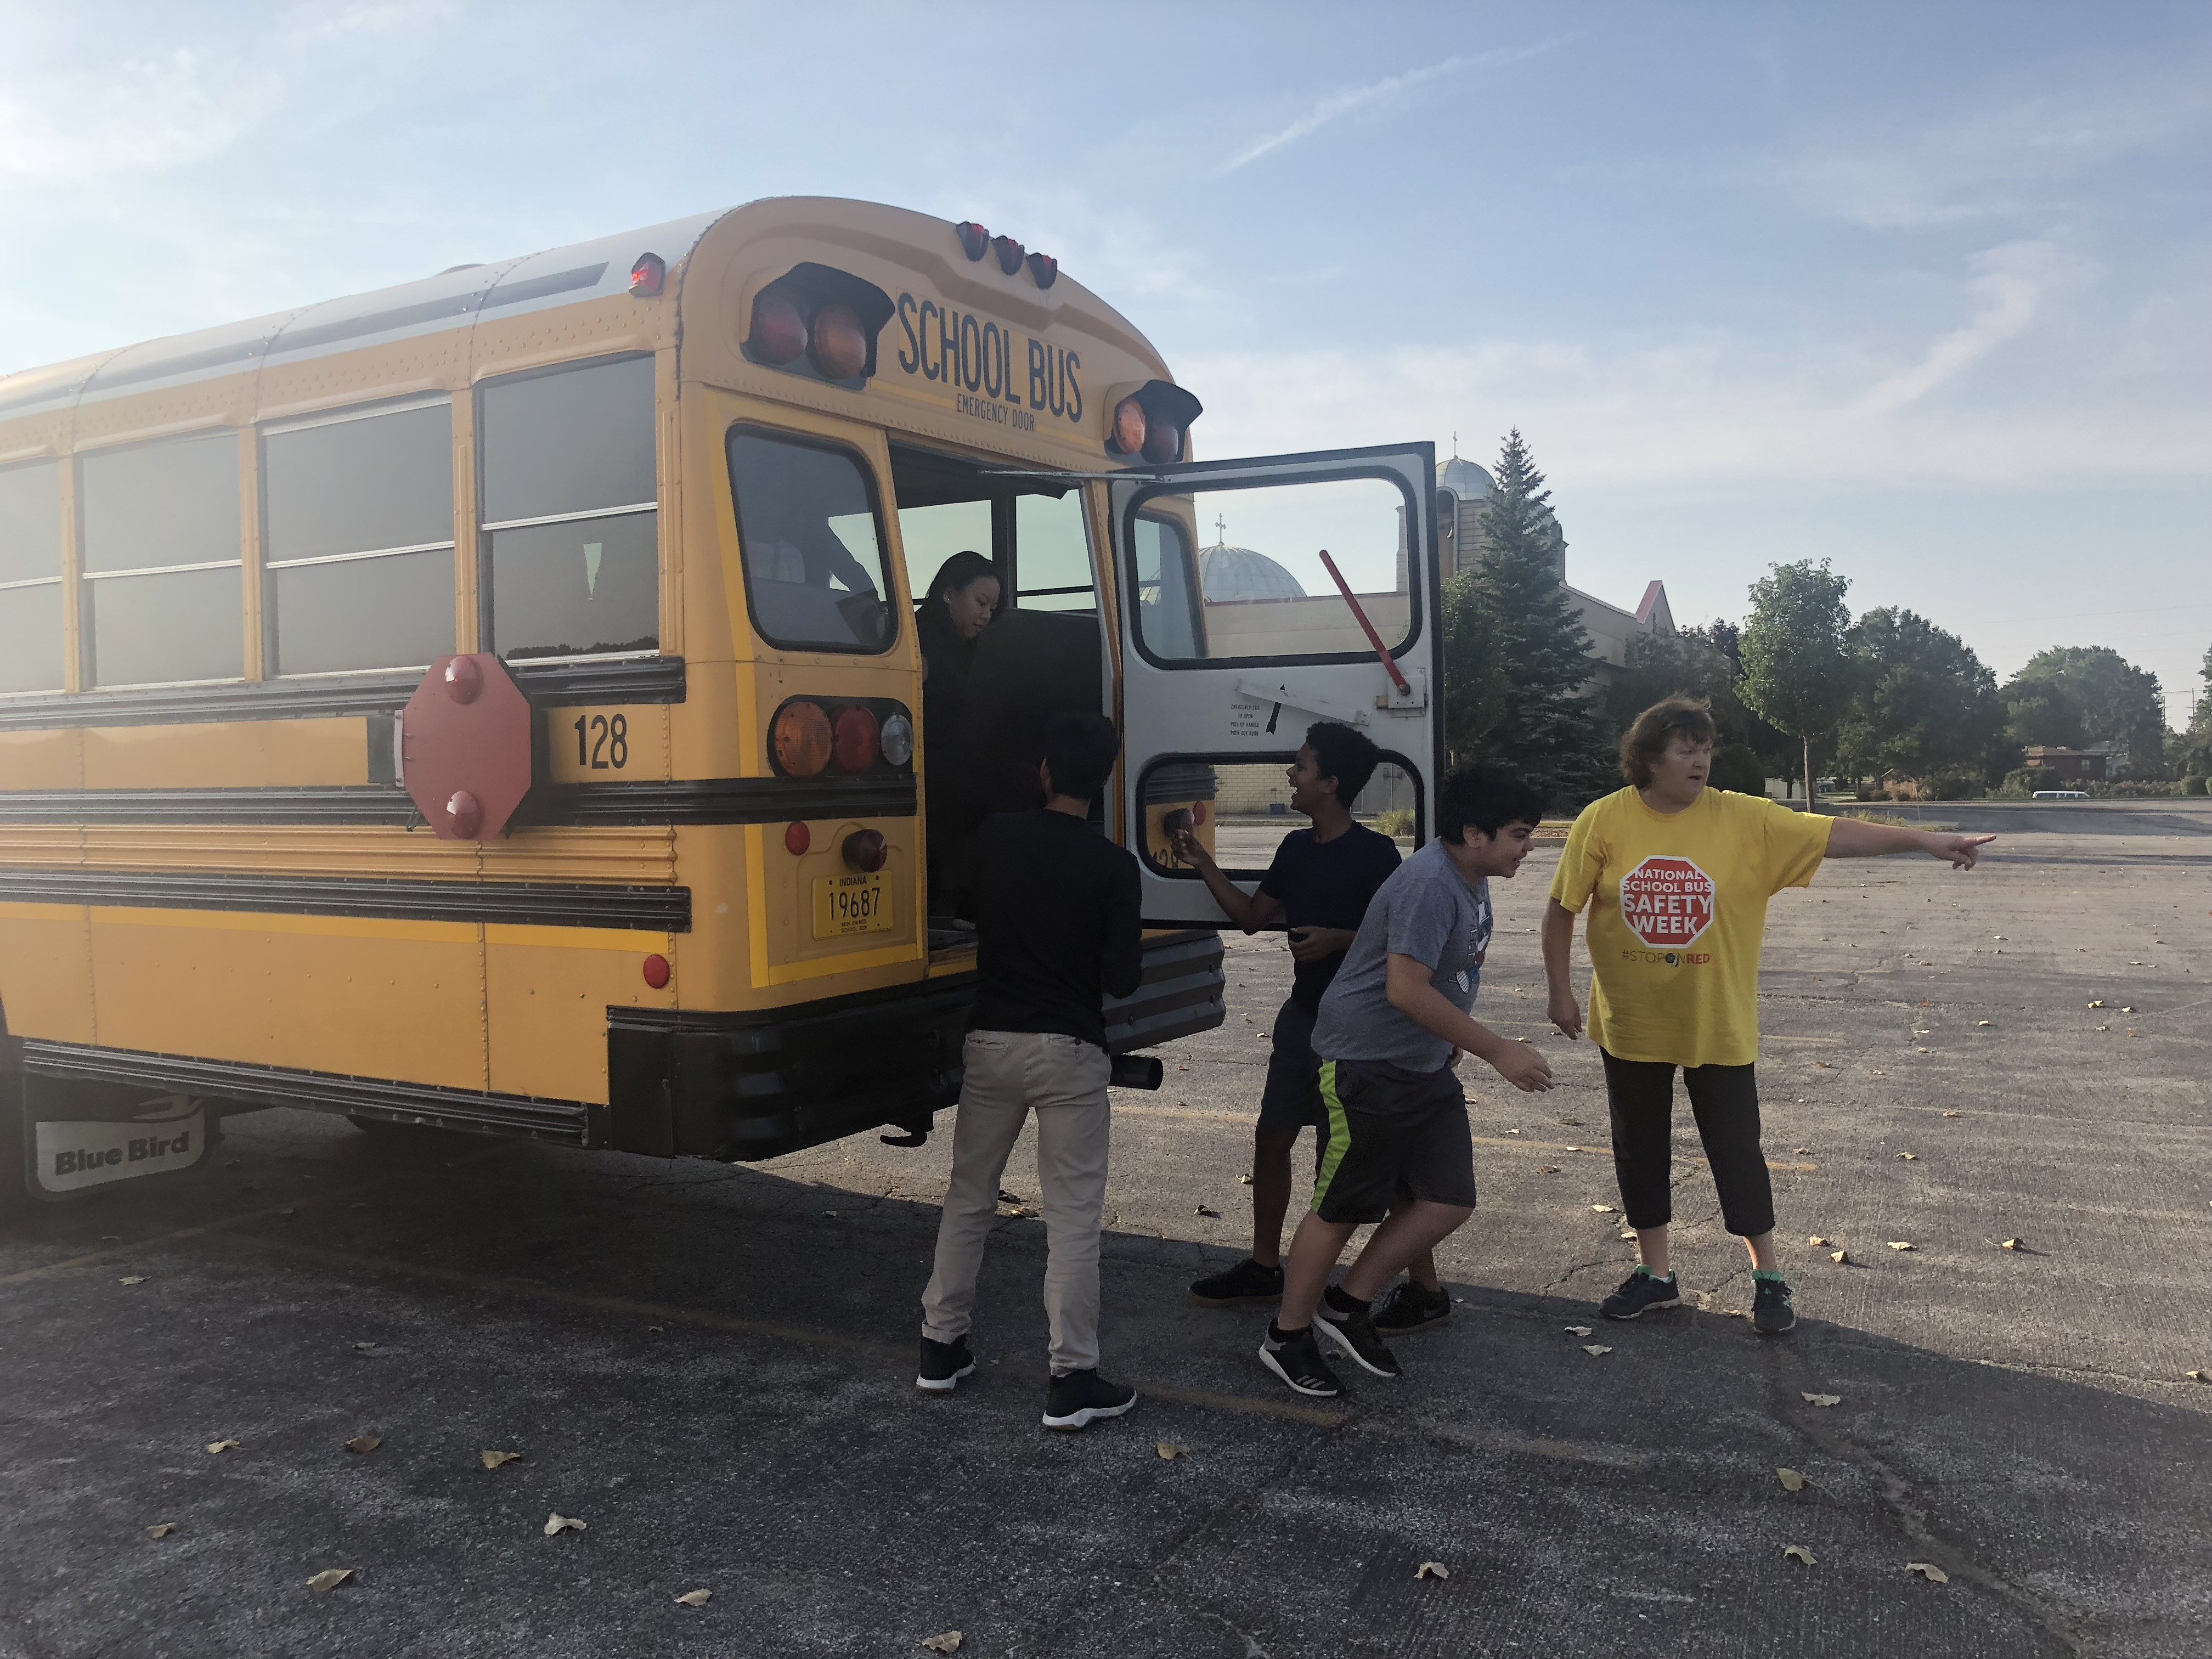 Bus 128 (Ms. Anne) and her Grimmer students conduct a successful practice bus evacuation. Great job to all drivers and aides for keeping our students safe!!